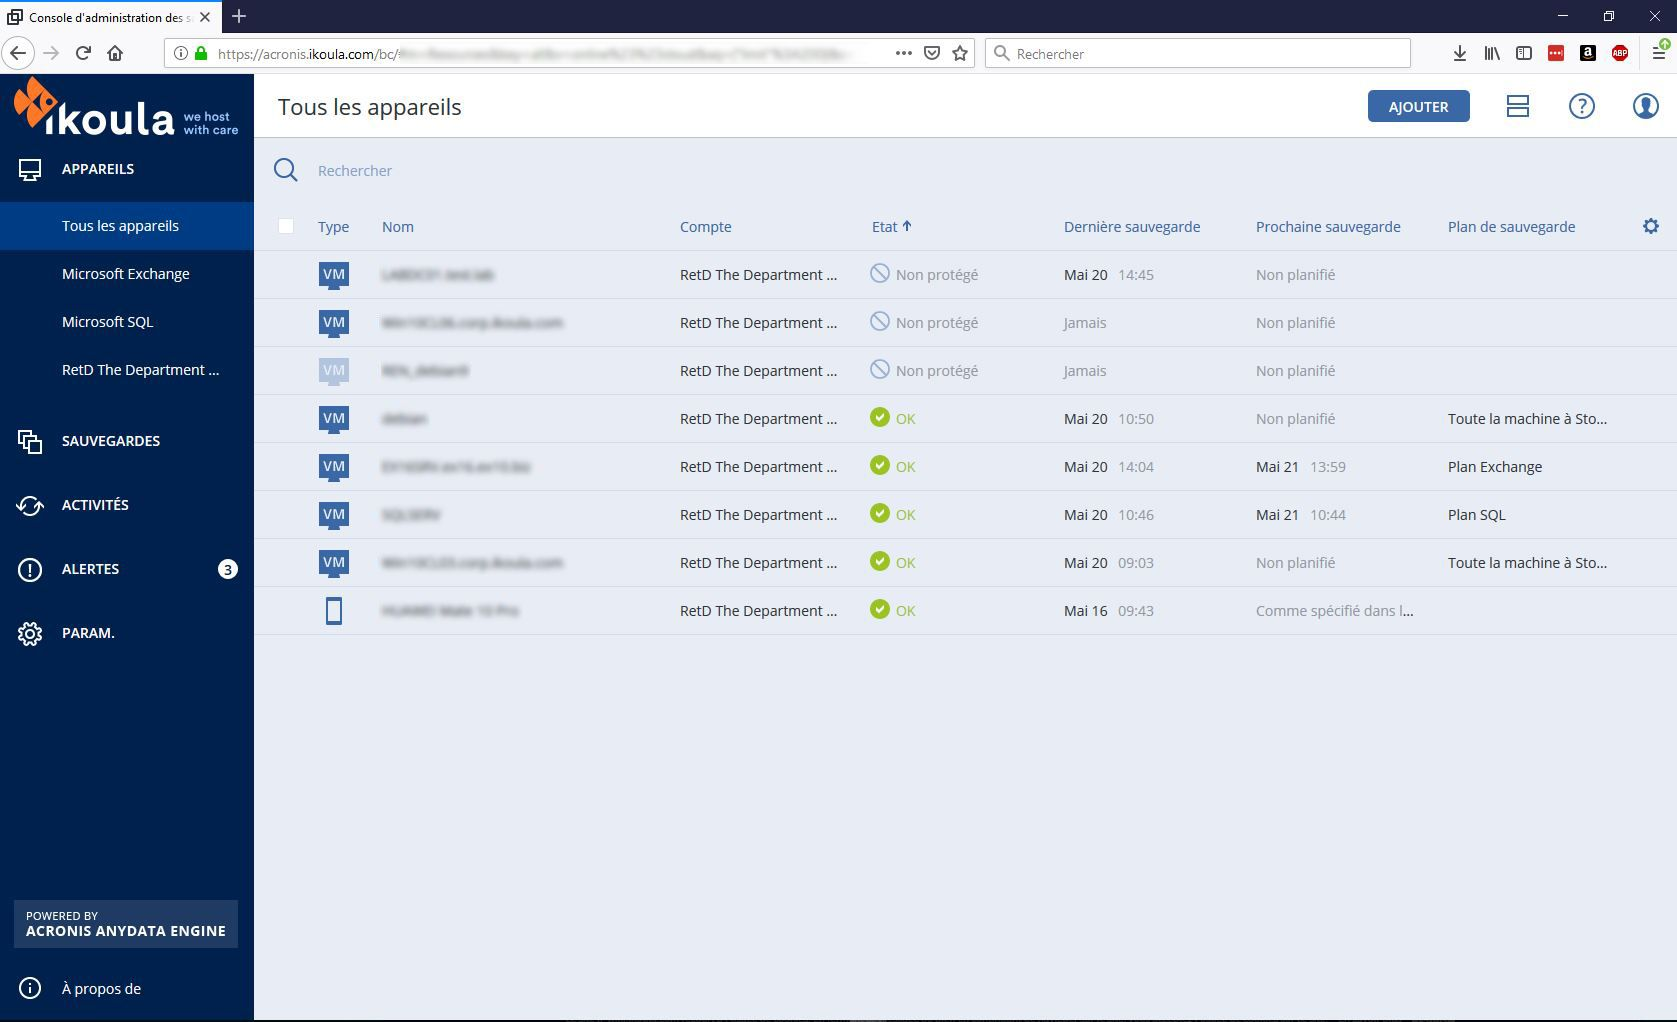 Cloud Backup Acronis